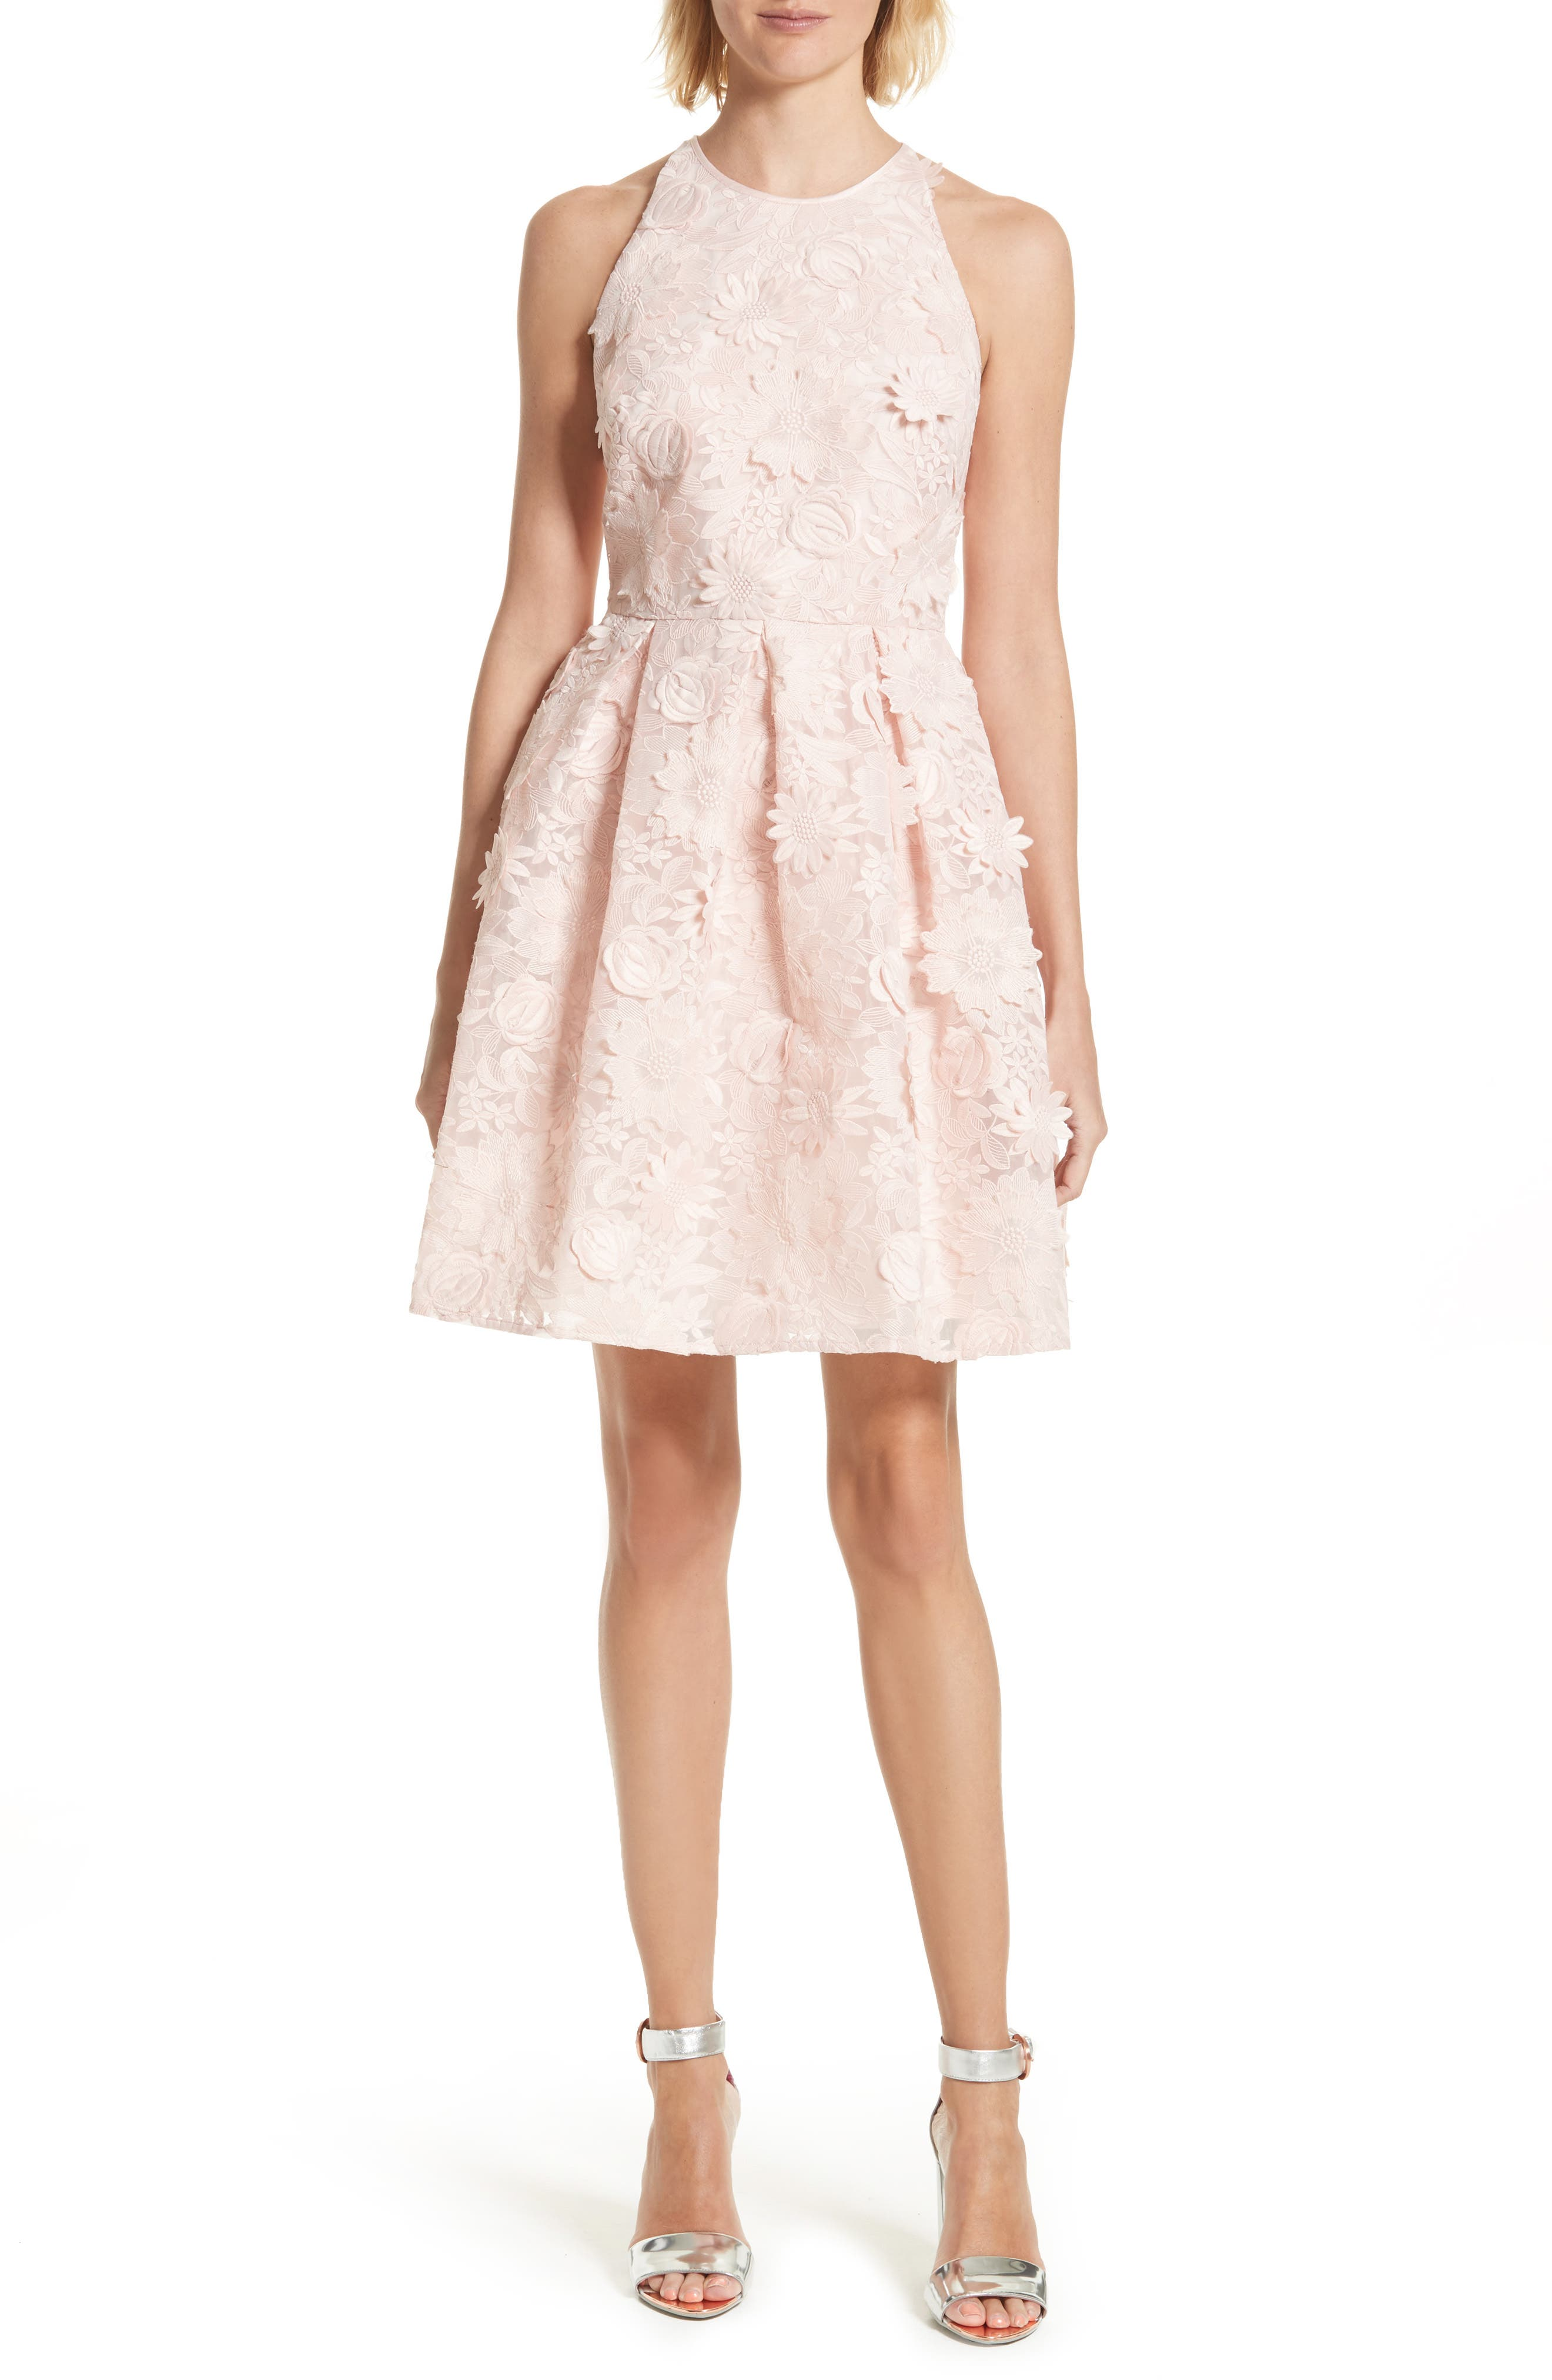 Sweetee Lace Skater Dress,                         Main,                         color, Baby Pink